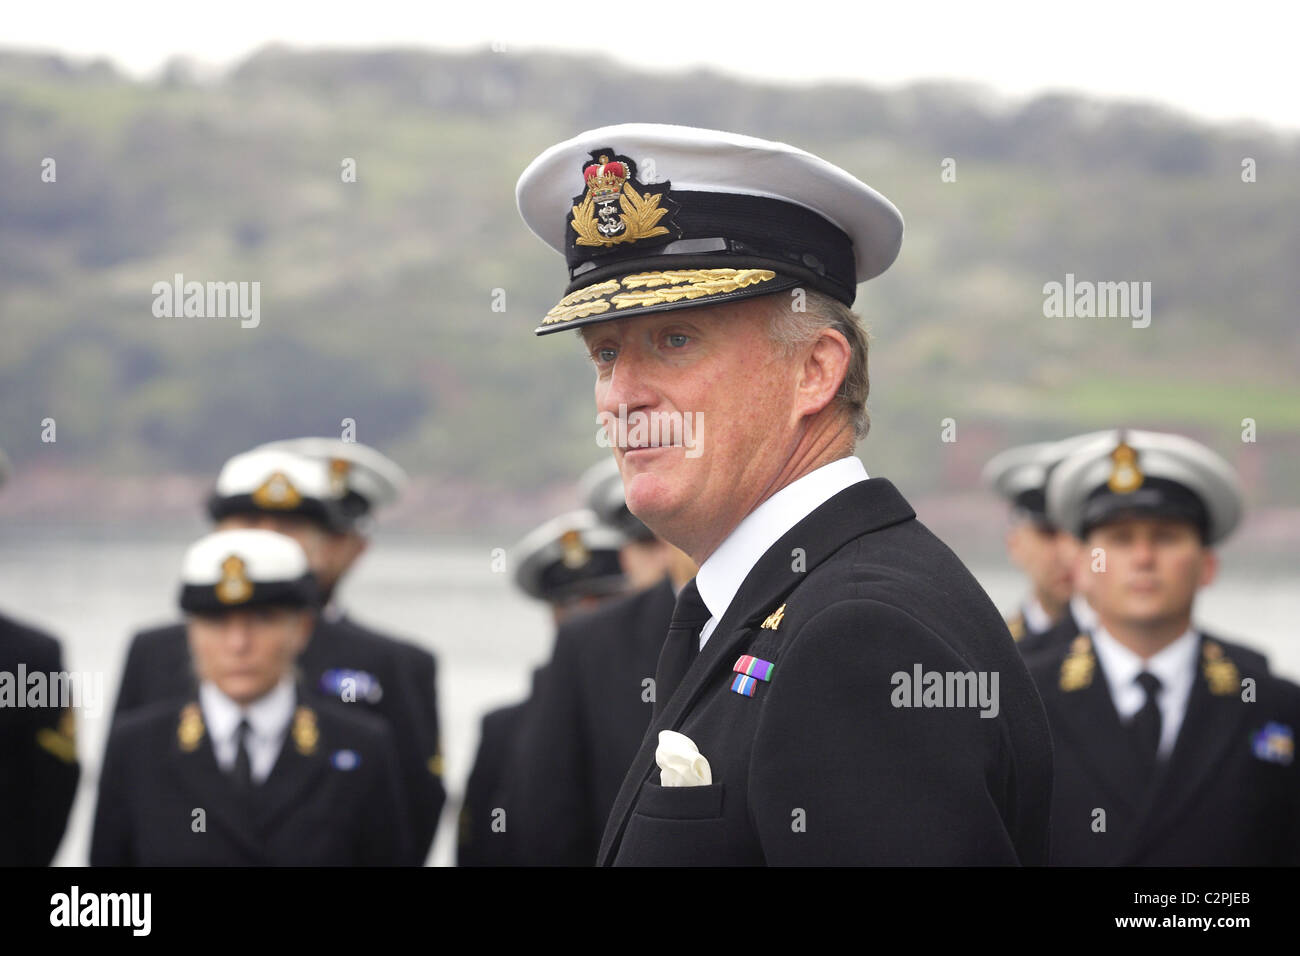 Rear Admiral Chris Snow addressing the ship's company aboard HMS Cumberland. - Stock Image